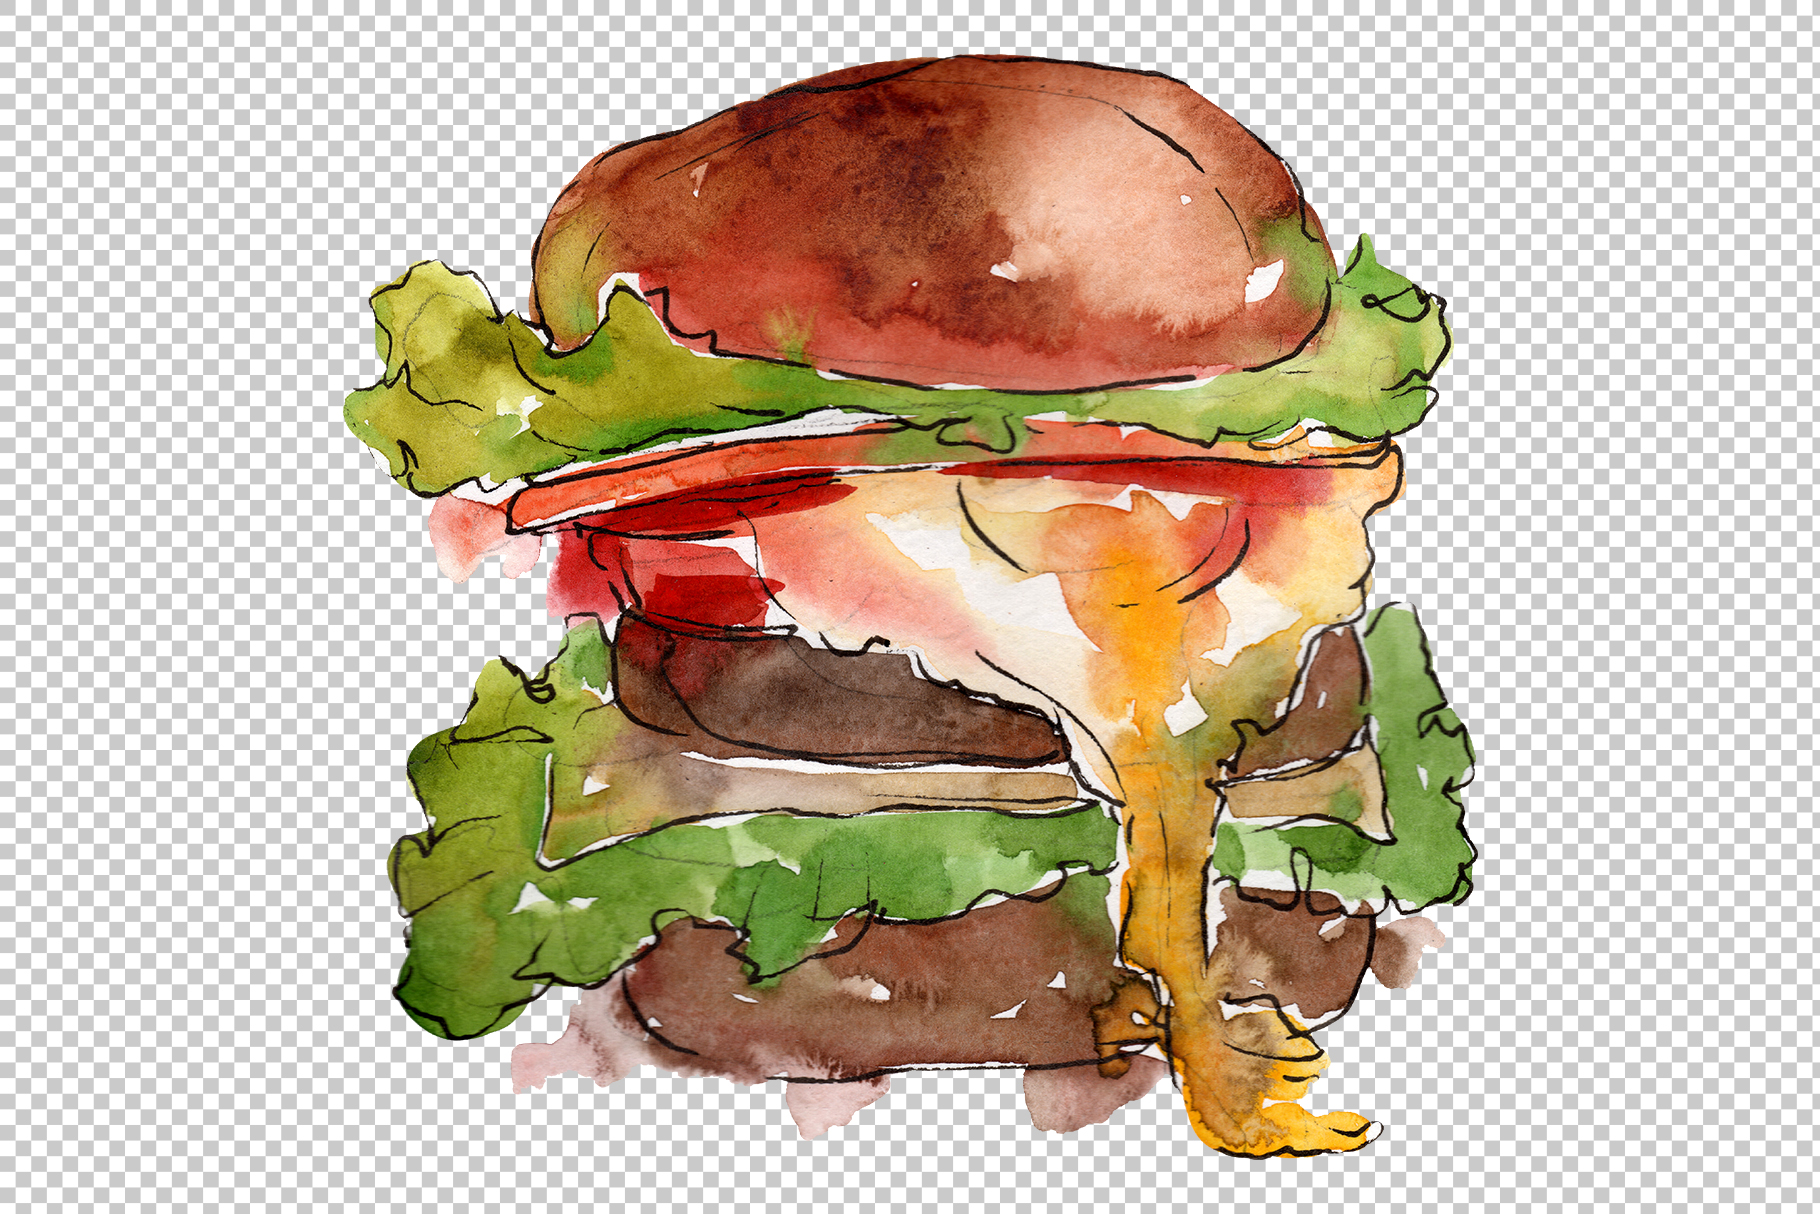 Hamburger for gentleman watercolor png example image 2